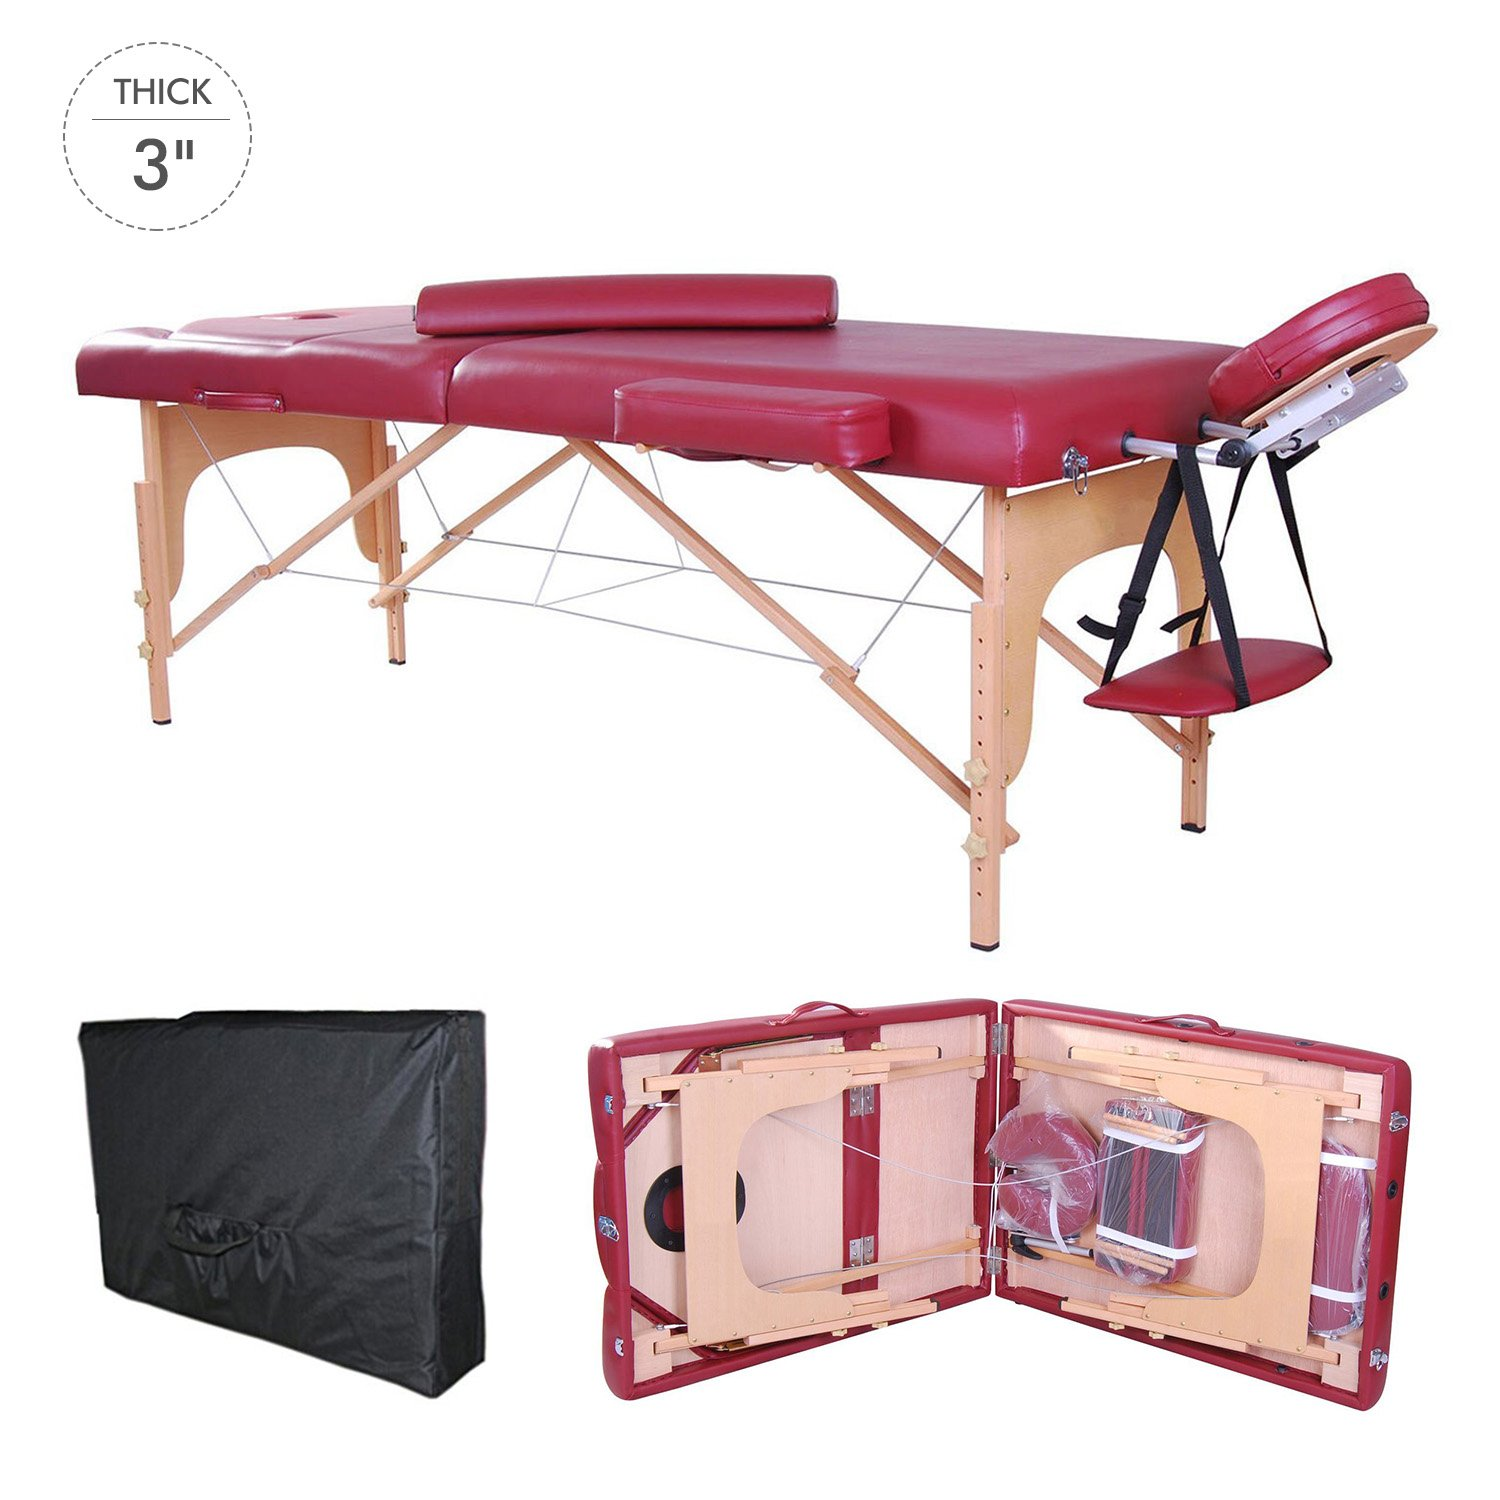 Soozier 91-Inch 3-Section Portable Massage Table with Carrying Bag, 3-Inch Thick, Rose Red Aosom Canada 5550-3076RC